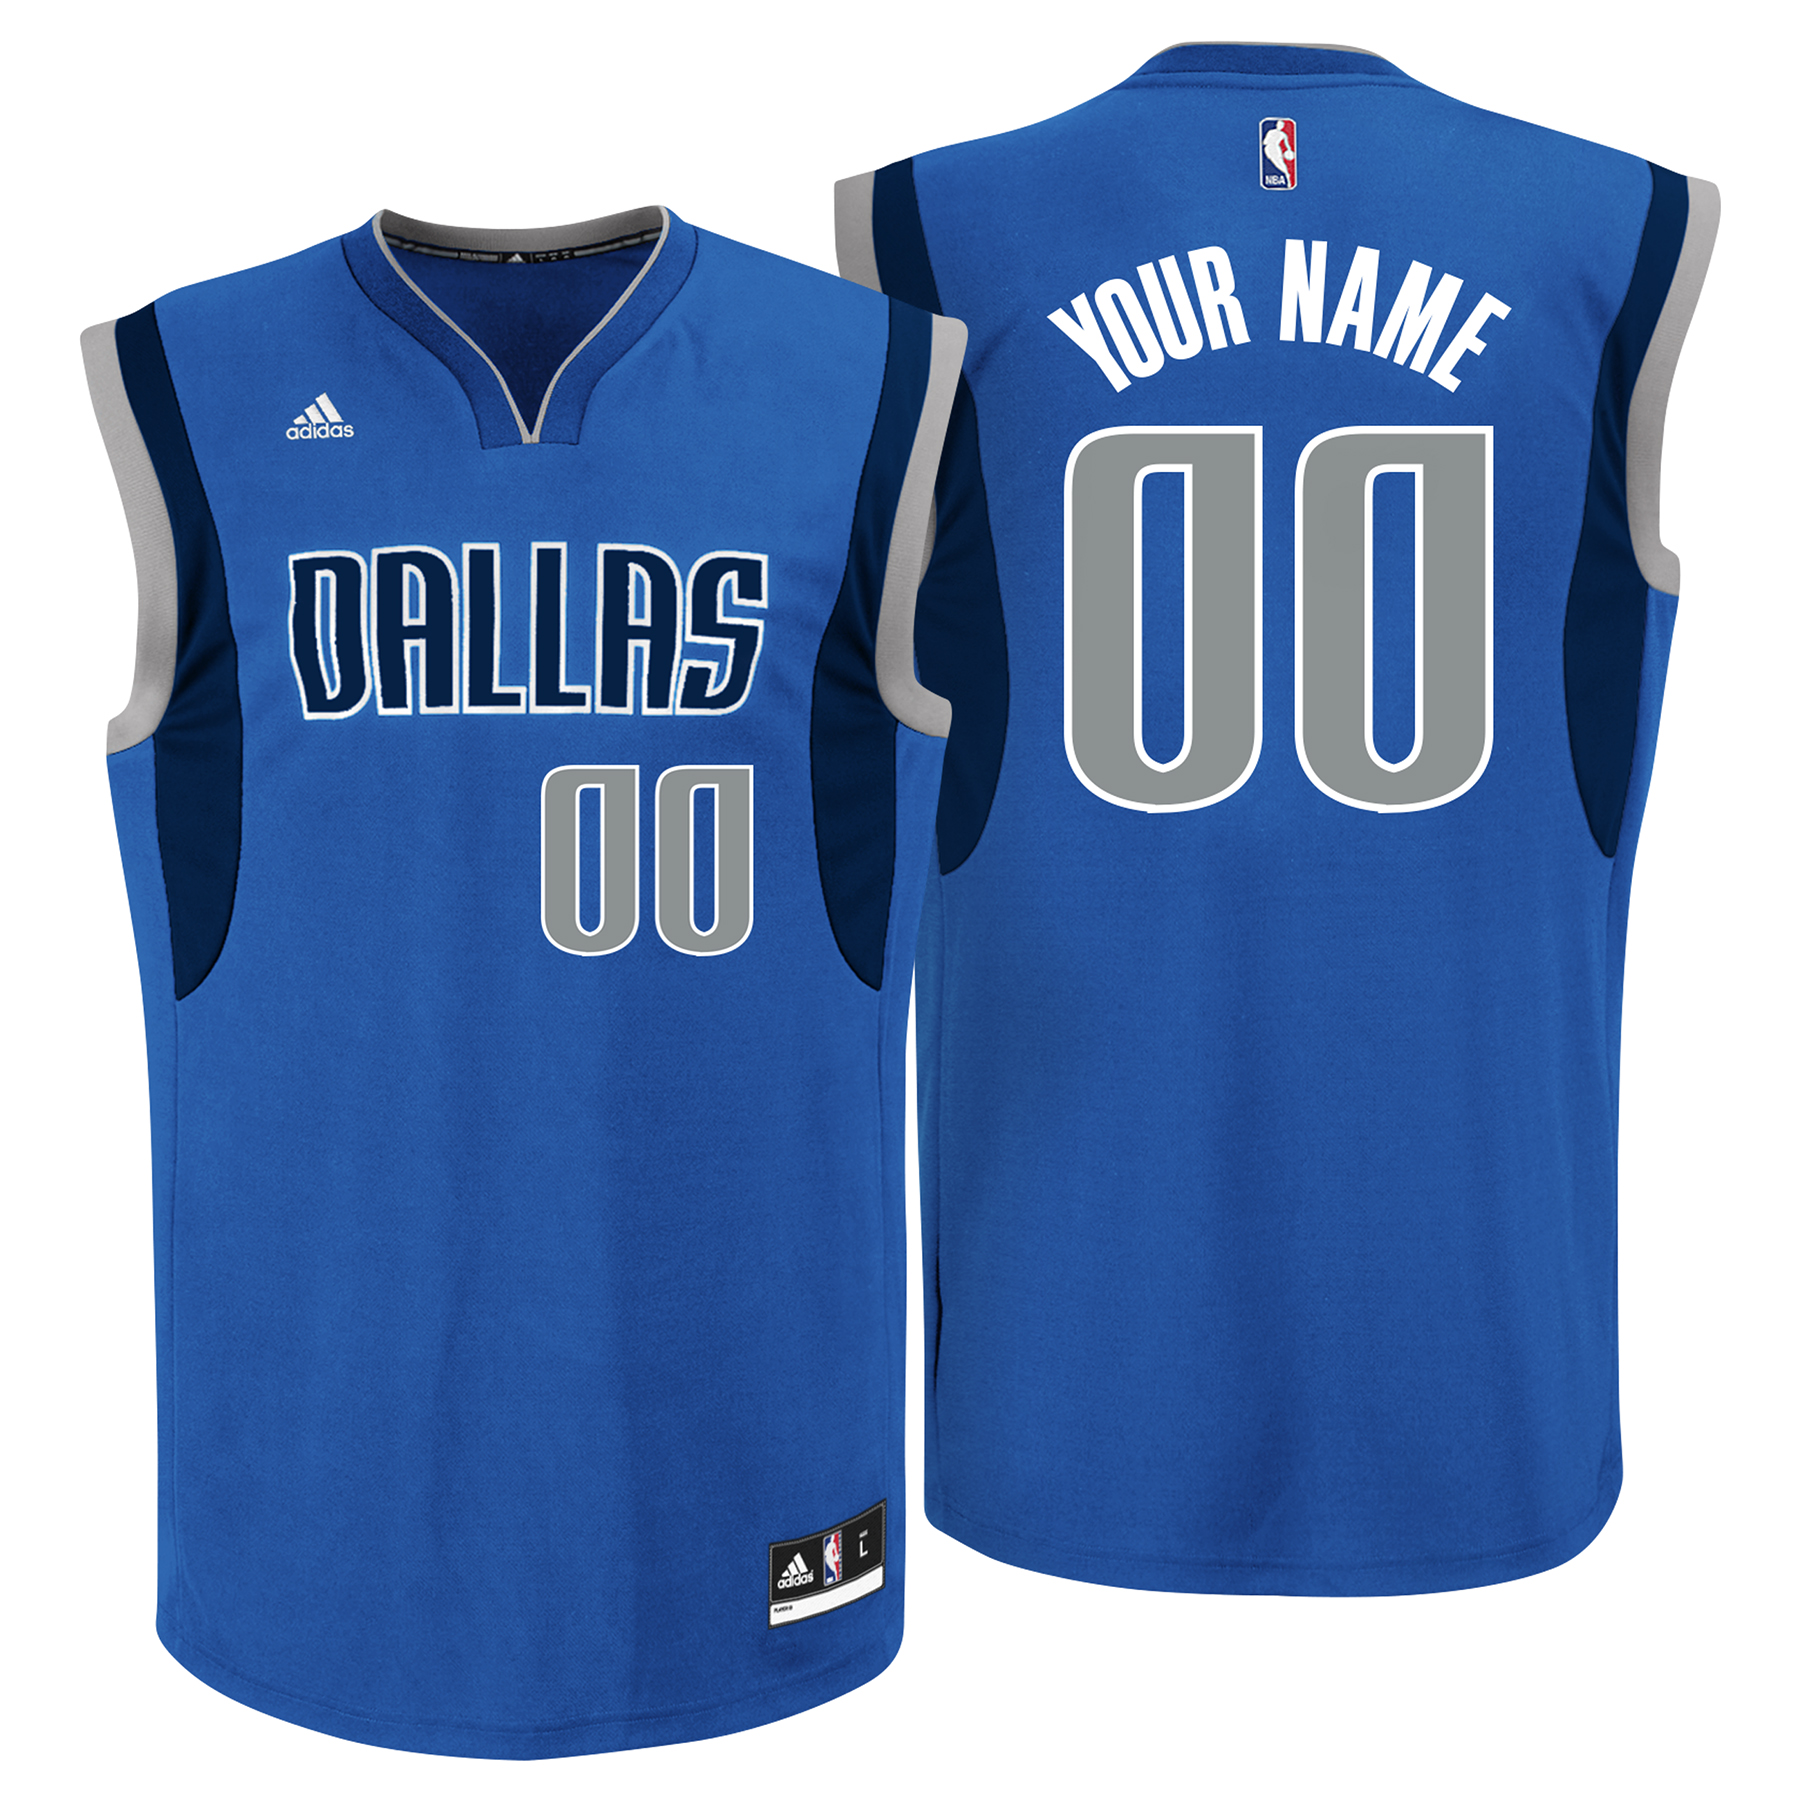 Dallas Mavericks Road Replica Jersey - Custom - Mens